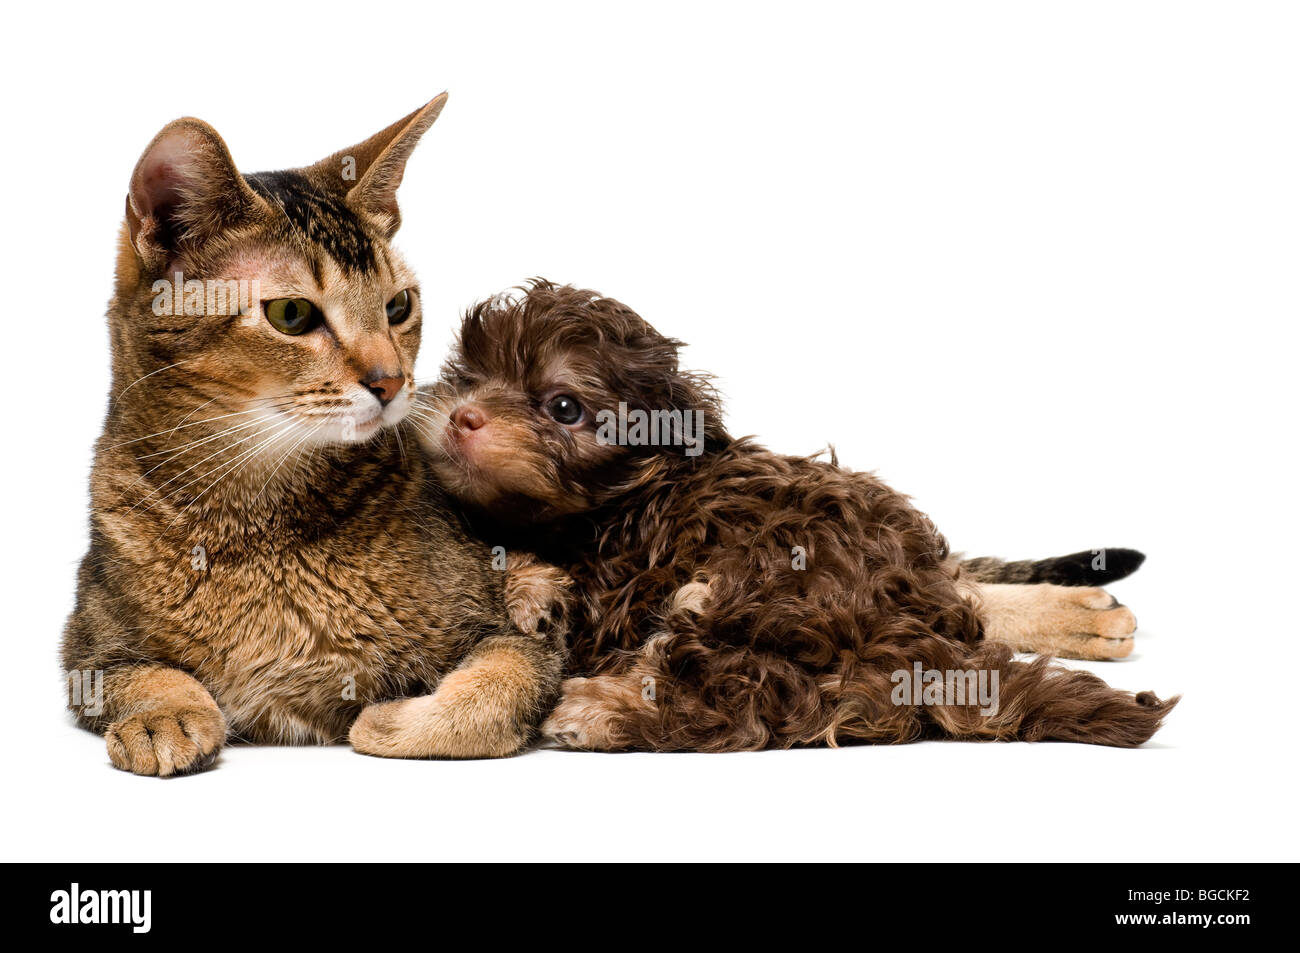 Cat and lapdog in studio on a neutral background - Stock Image